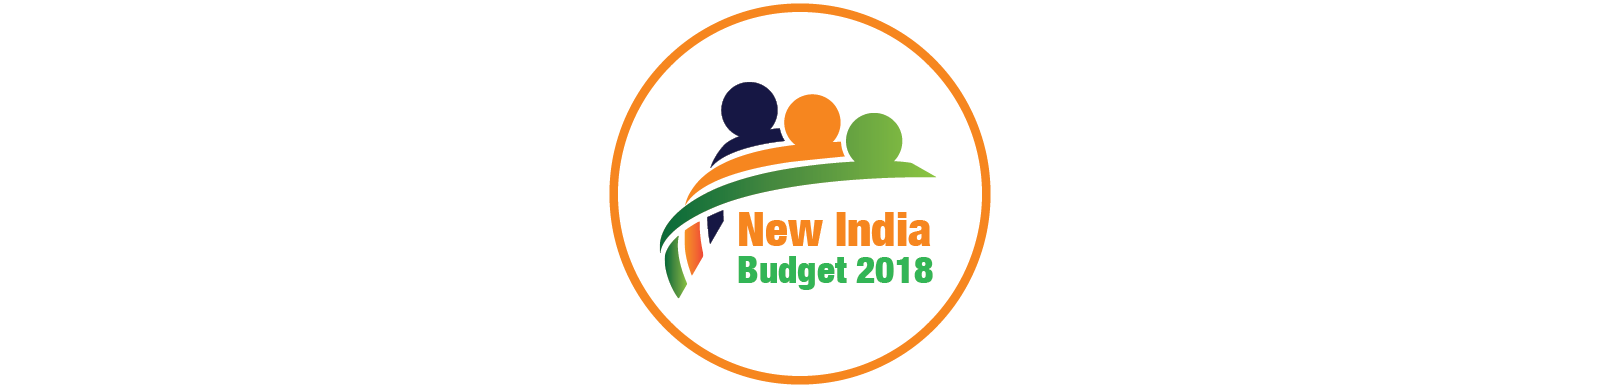 New India Budget 2018